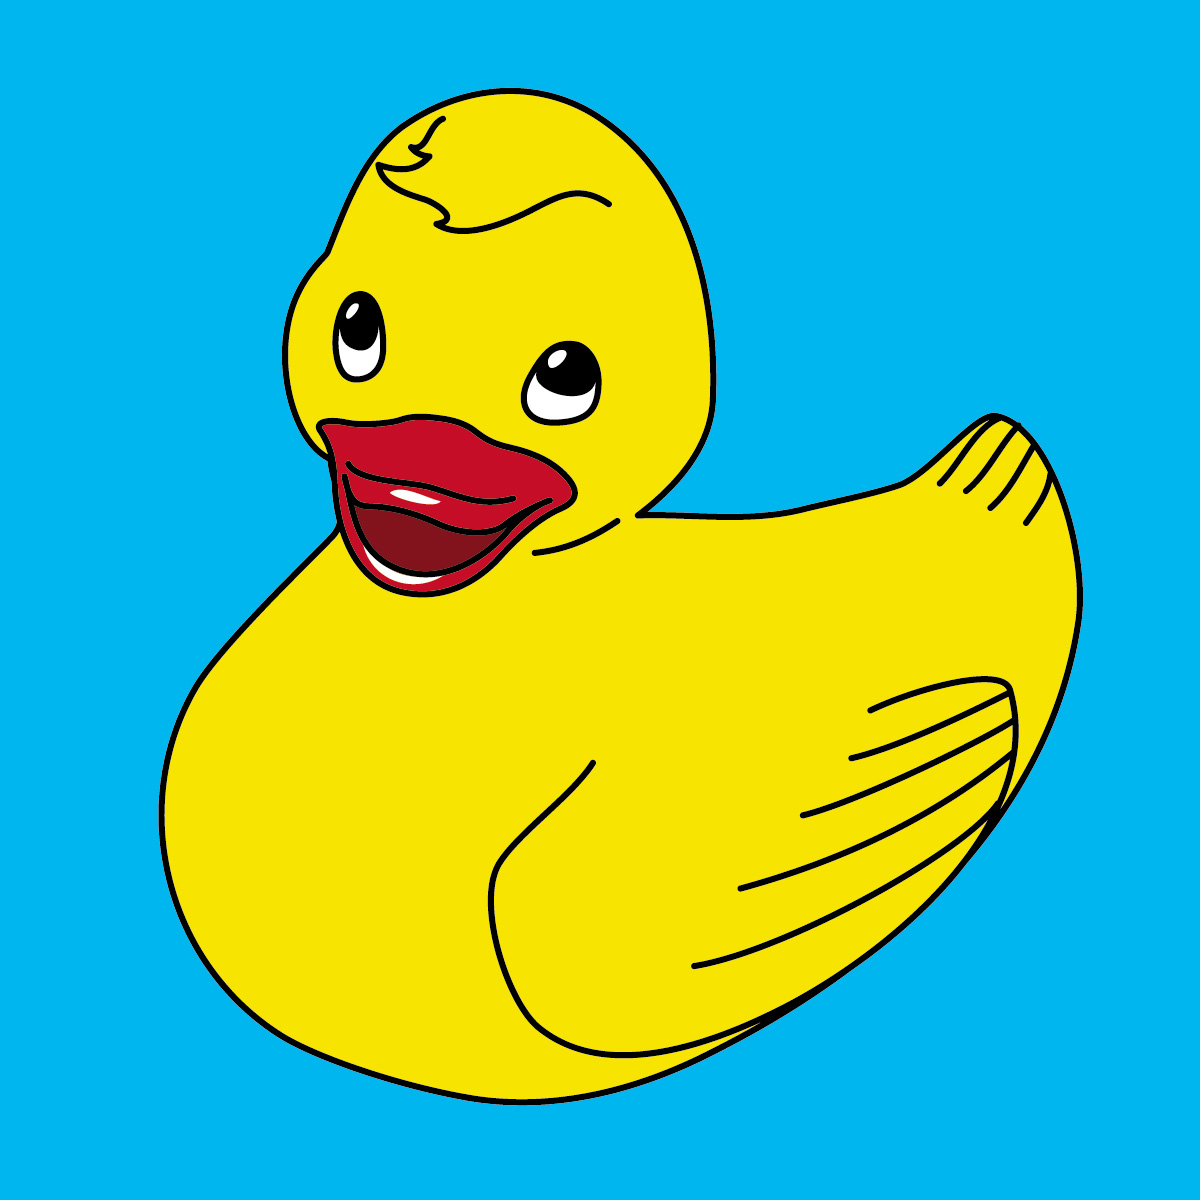 rubber ducky clipart clipart suggest rubber duck clip art free black and white rubber duck clip art free black and white